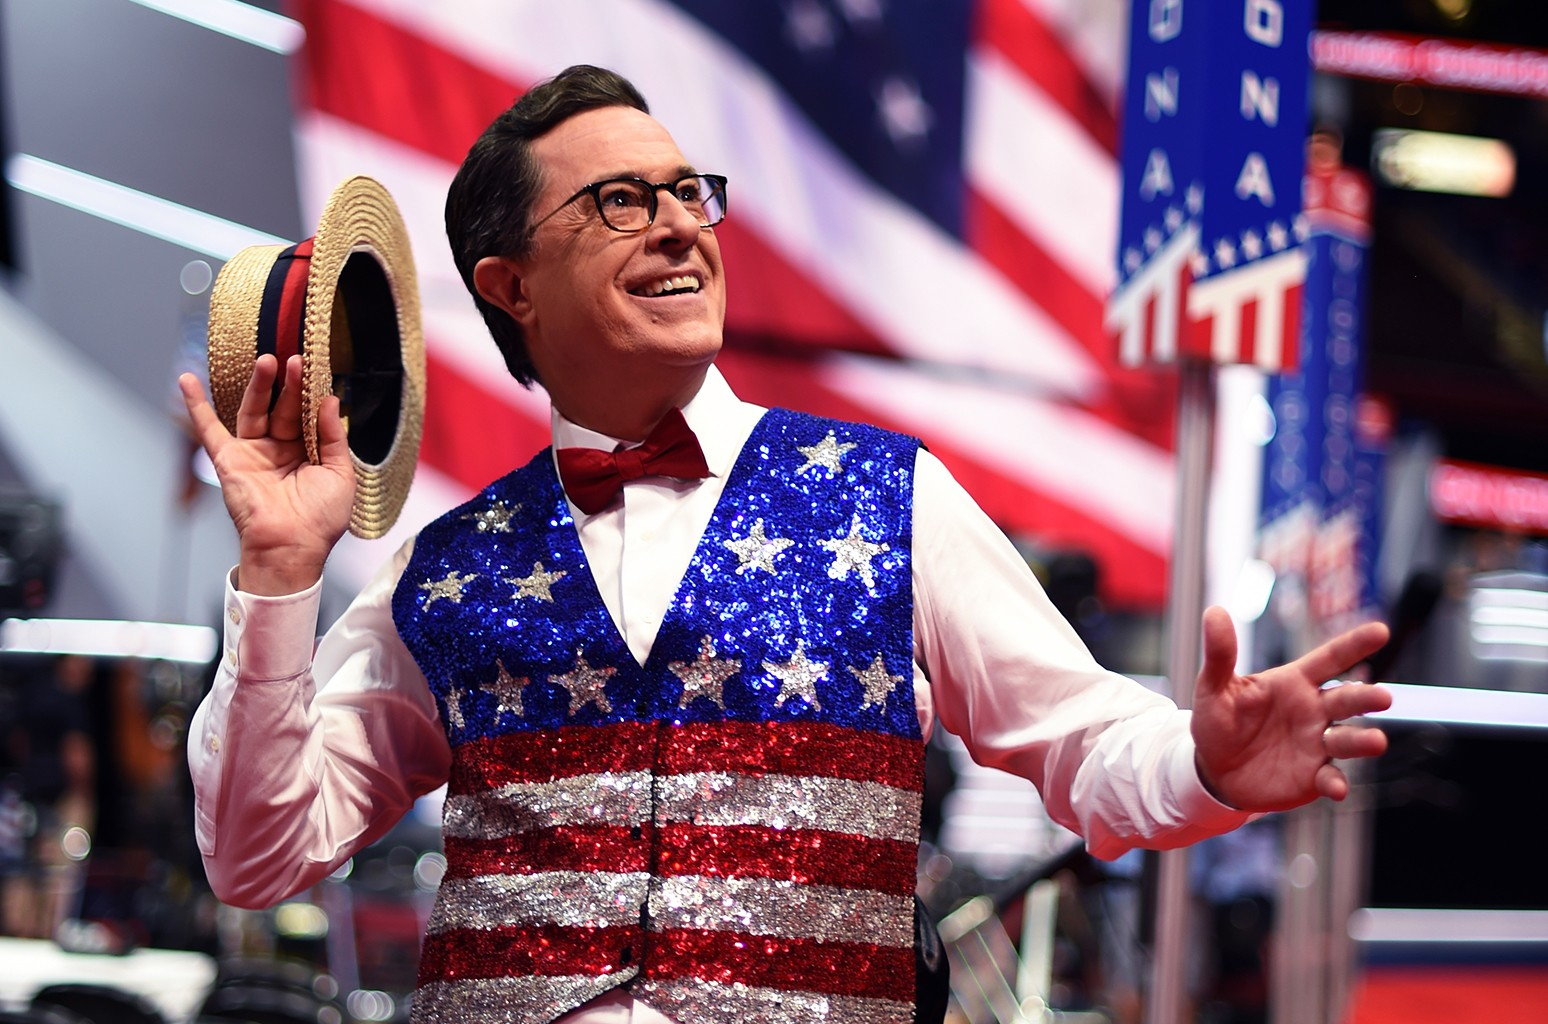 Stephen Colbert ahead of the Republican National Convention